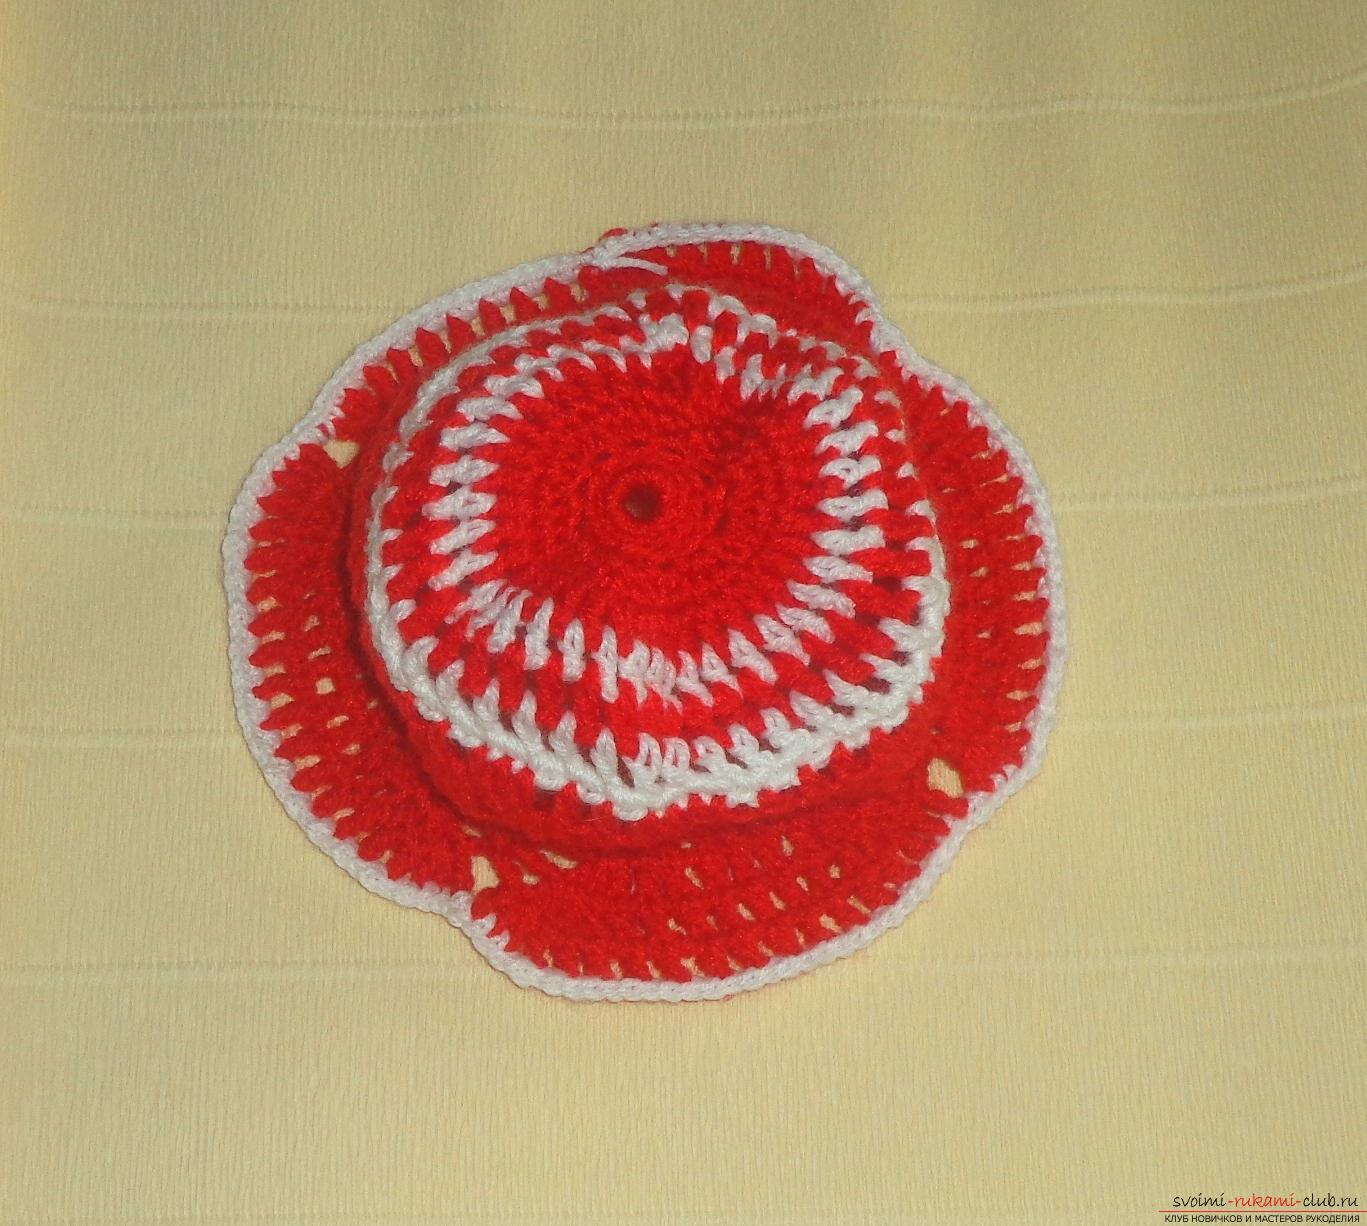 Master class on knitting a baby cap with a crochet with step-by-step instructions and photos. Photo №8